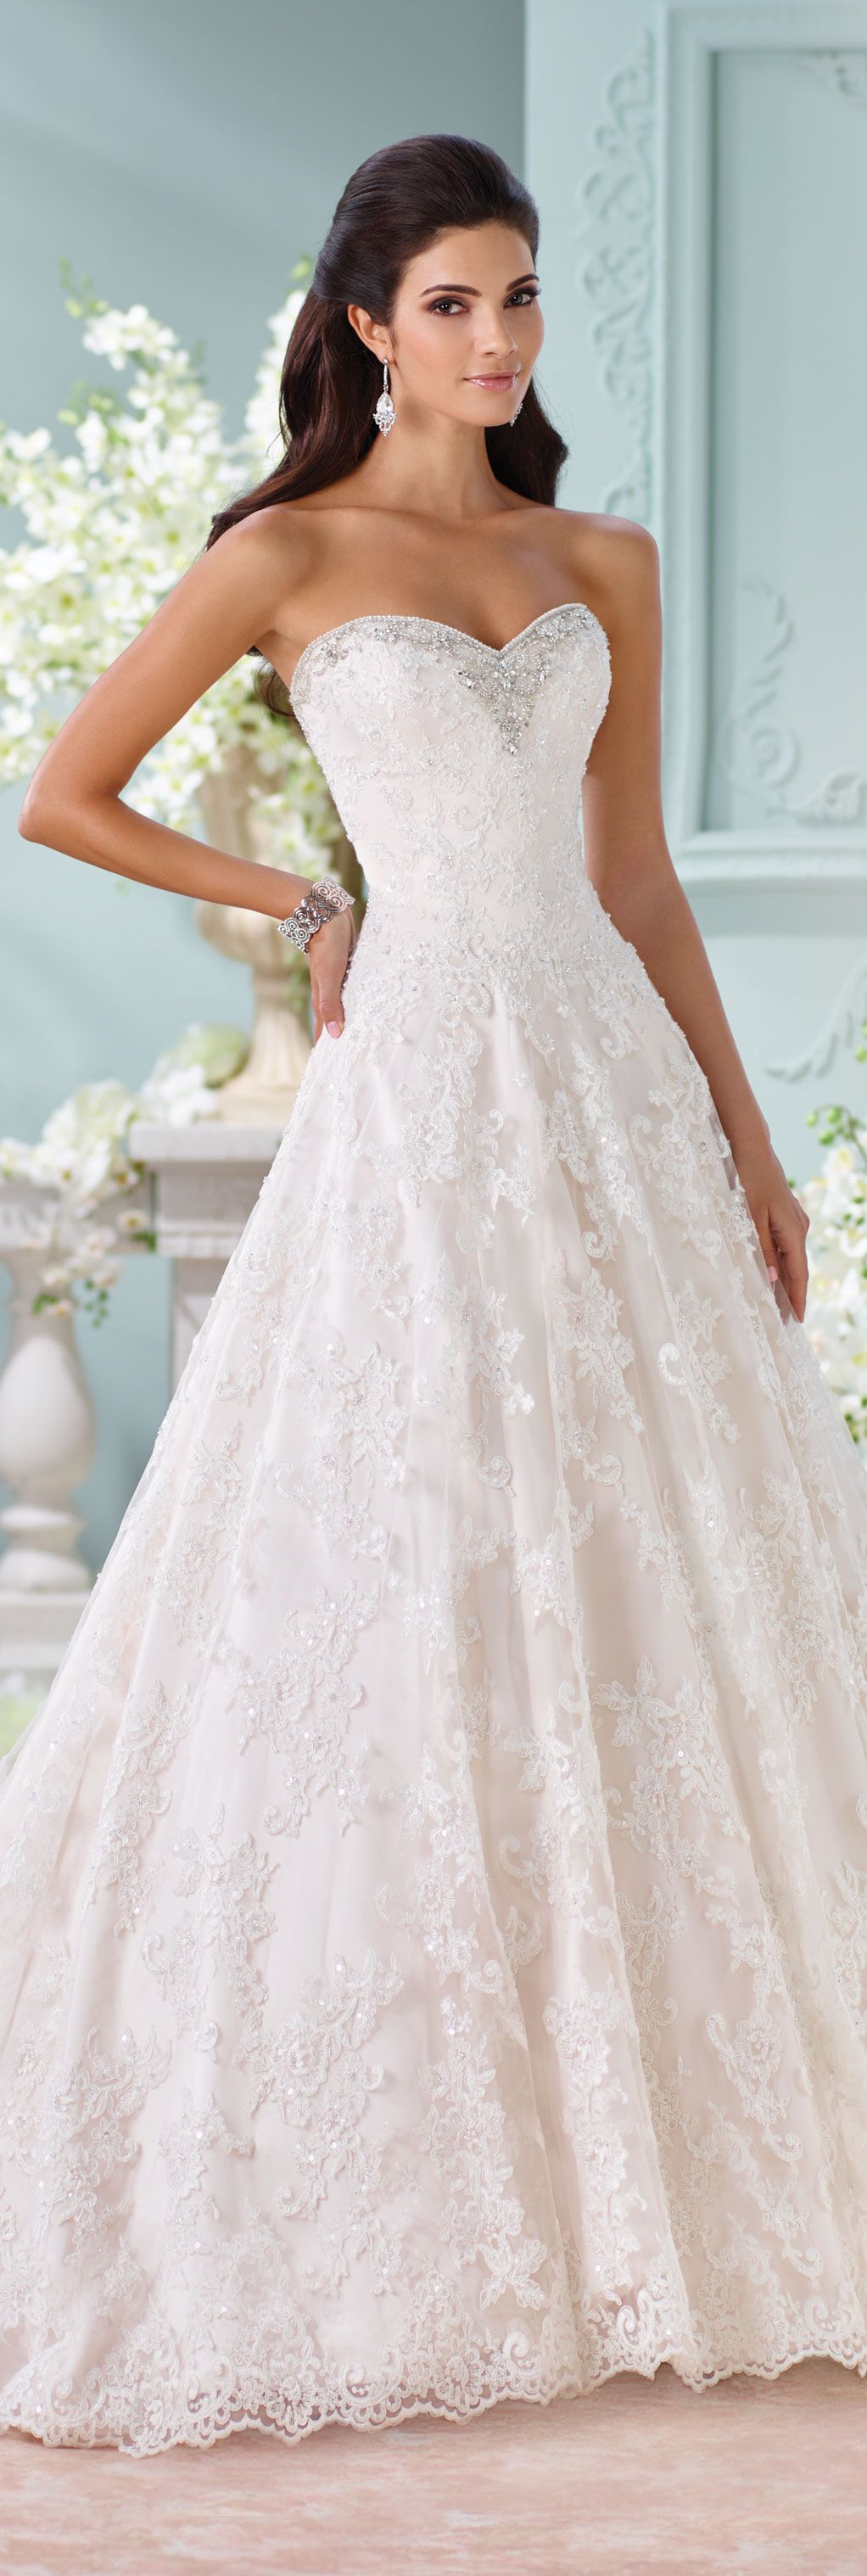 61cea1d6f04 The David Tutera for Mon Cheri Spring 2016 Wedding Gown Collection - Style  No. 116211 Clytie  laceweddingdresses